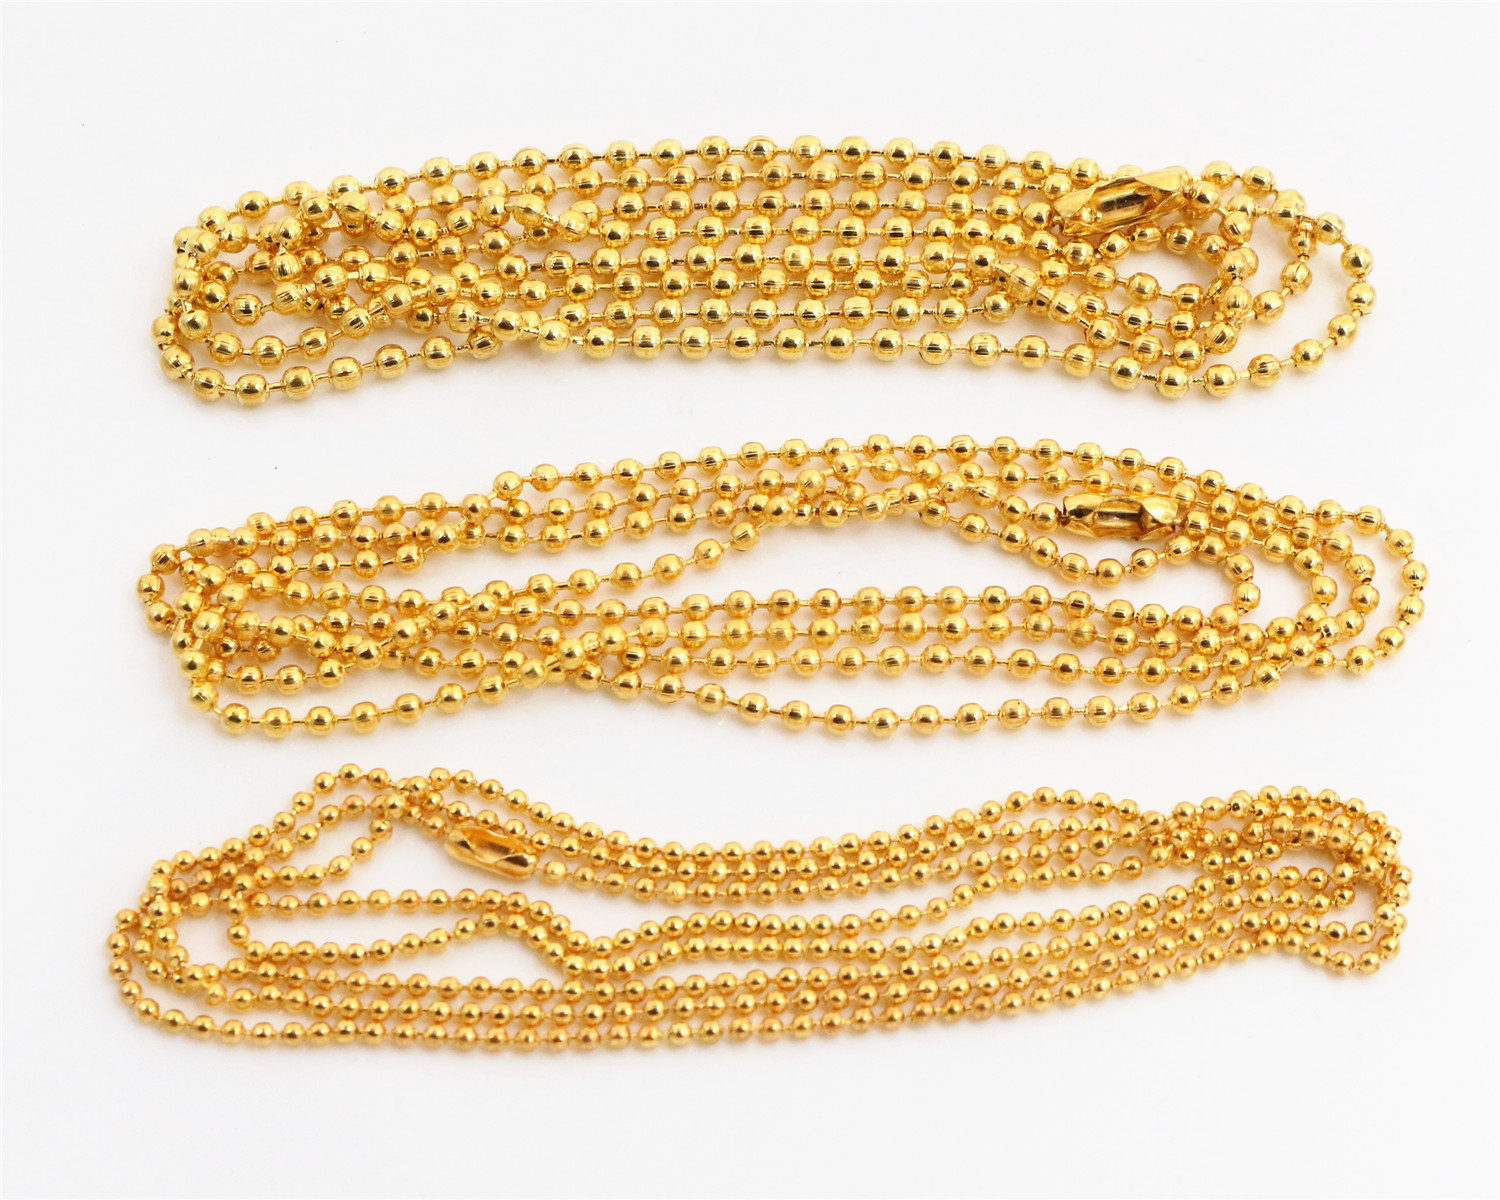 5pcs/lot 3 Size 1.5mm and 2.0mm and 2.4mm Gold Colors Plated  Ball Beads Chain Necklace Bead Connector 65cm(25.5 inch)5pcs/lot 3 Size 1.5mm and 2.0mm and 2.4mm Gold Colors Plated  Ball Beads Chain Necklace Bead Connector 65cm(25.5 inch)